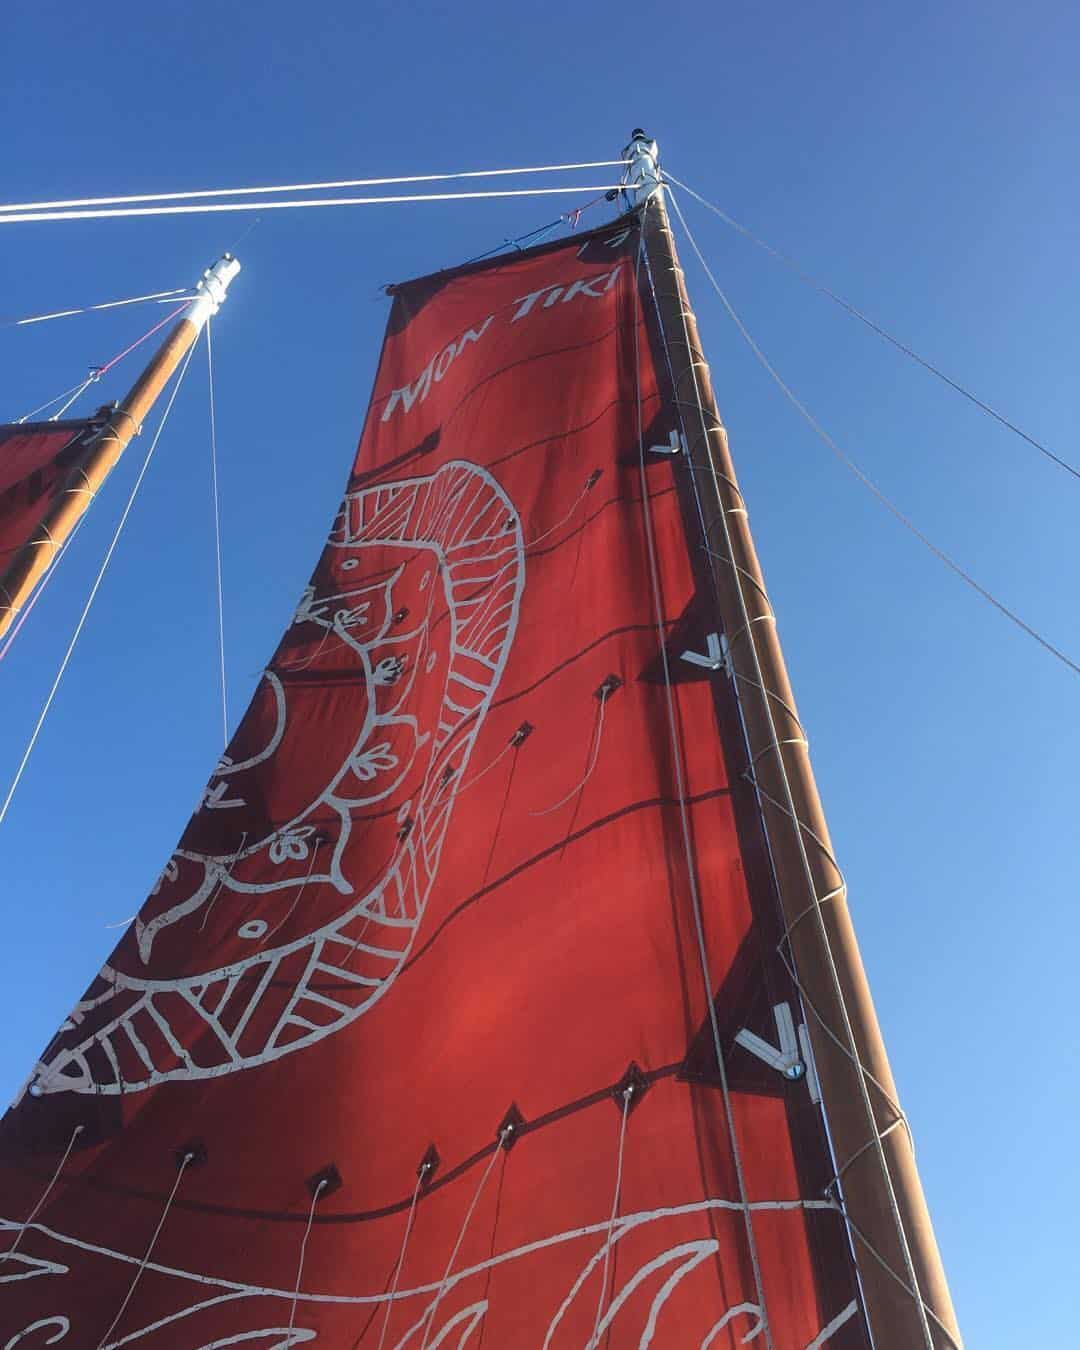 Mon Tiki's distinctively decorated sails